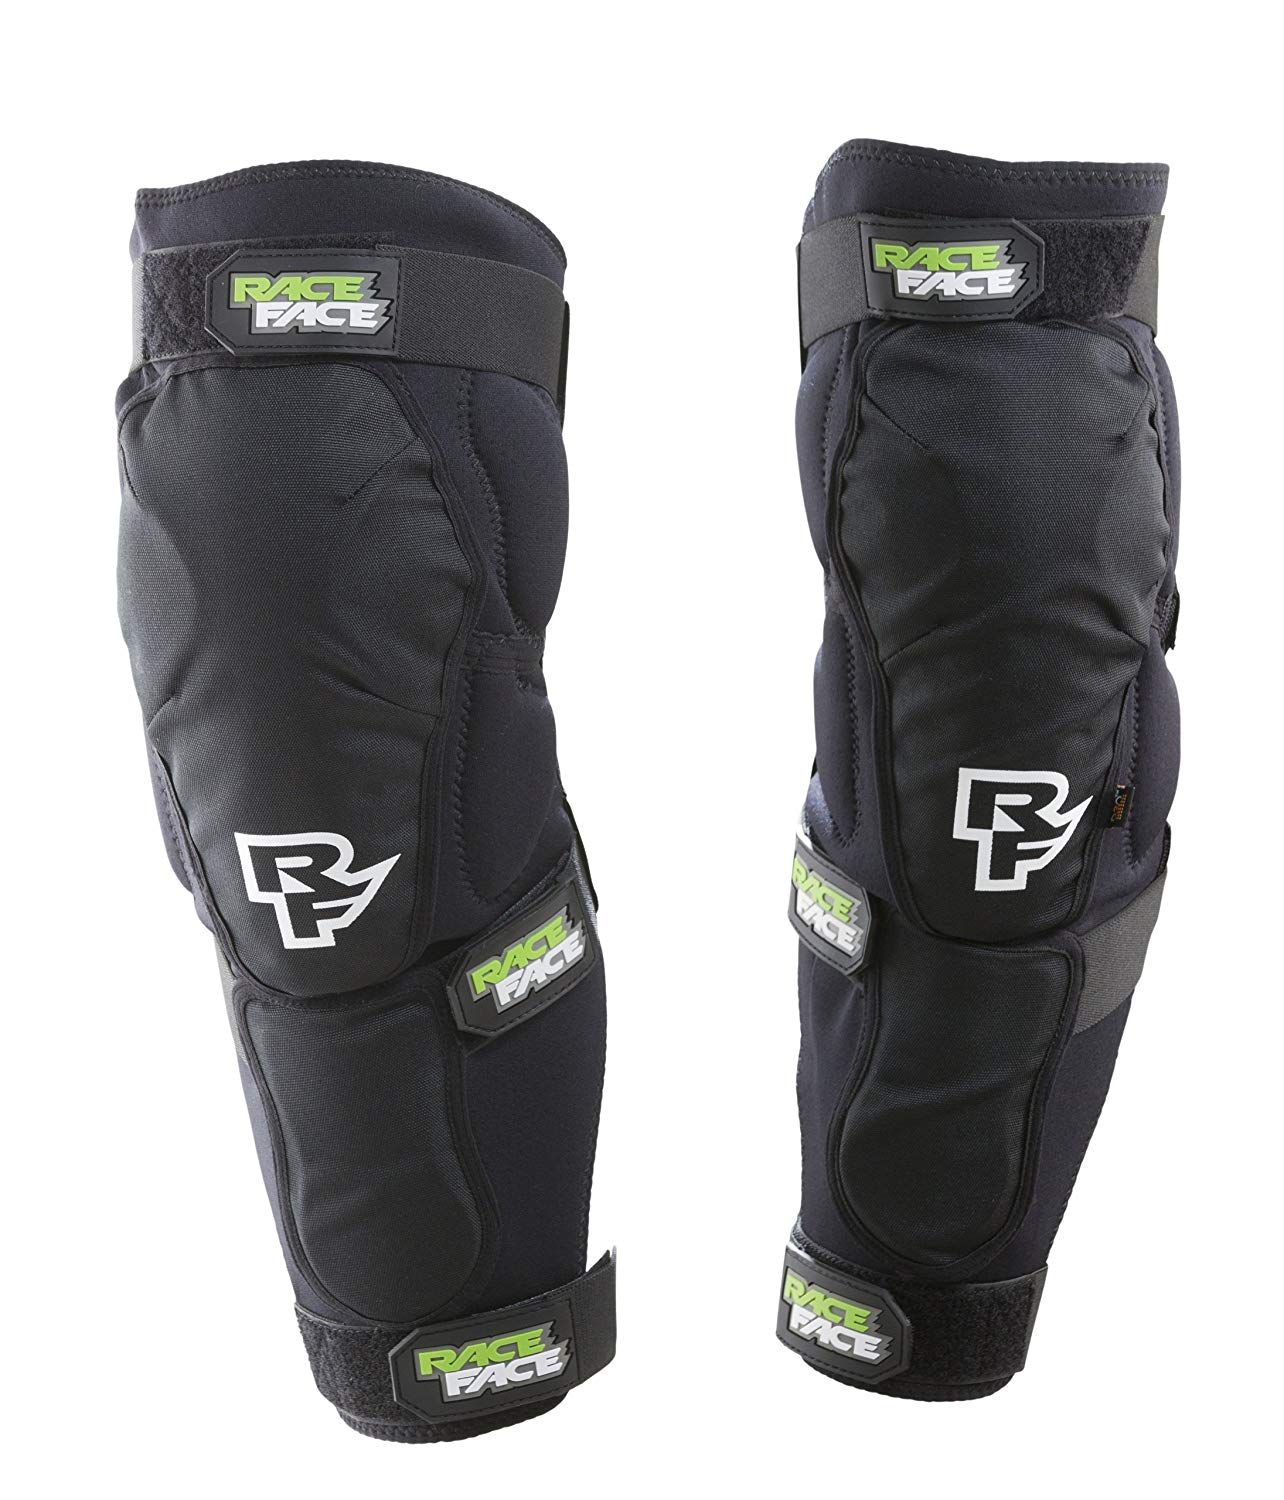 Best Mtb Knee Pads In 2020 Reviews Buying Guide Best Mtb Shin Pads Face Men